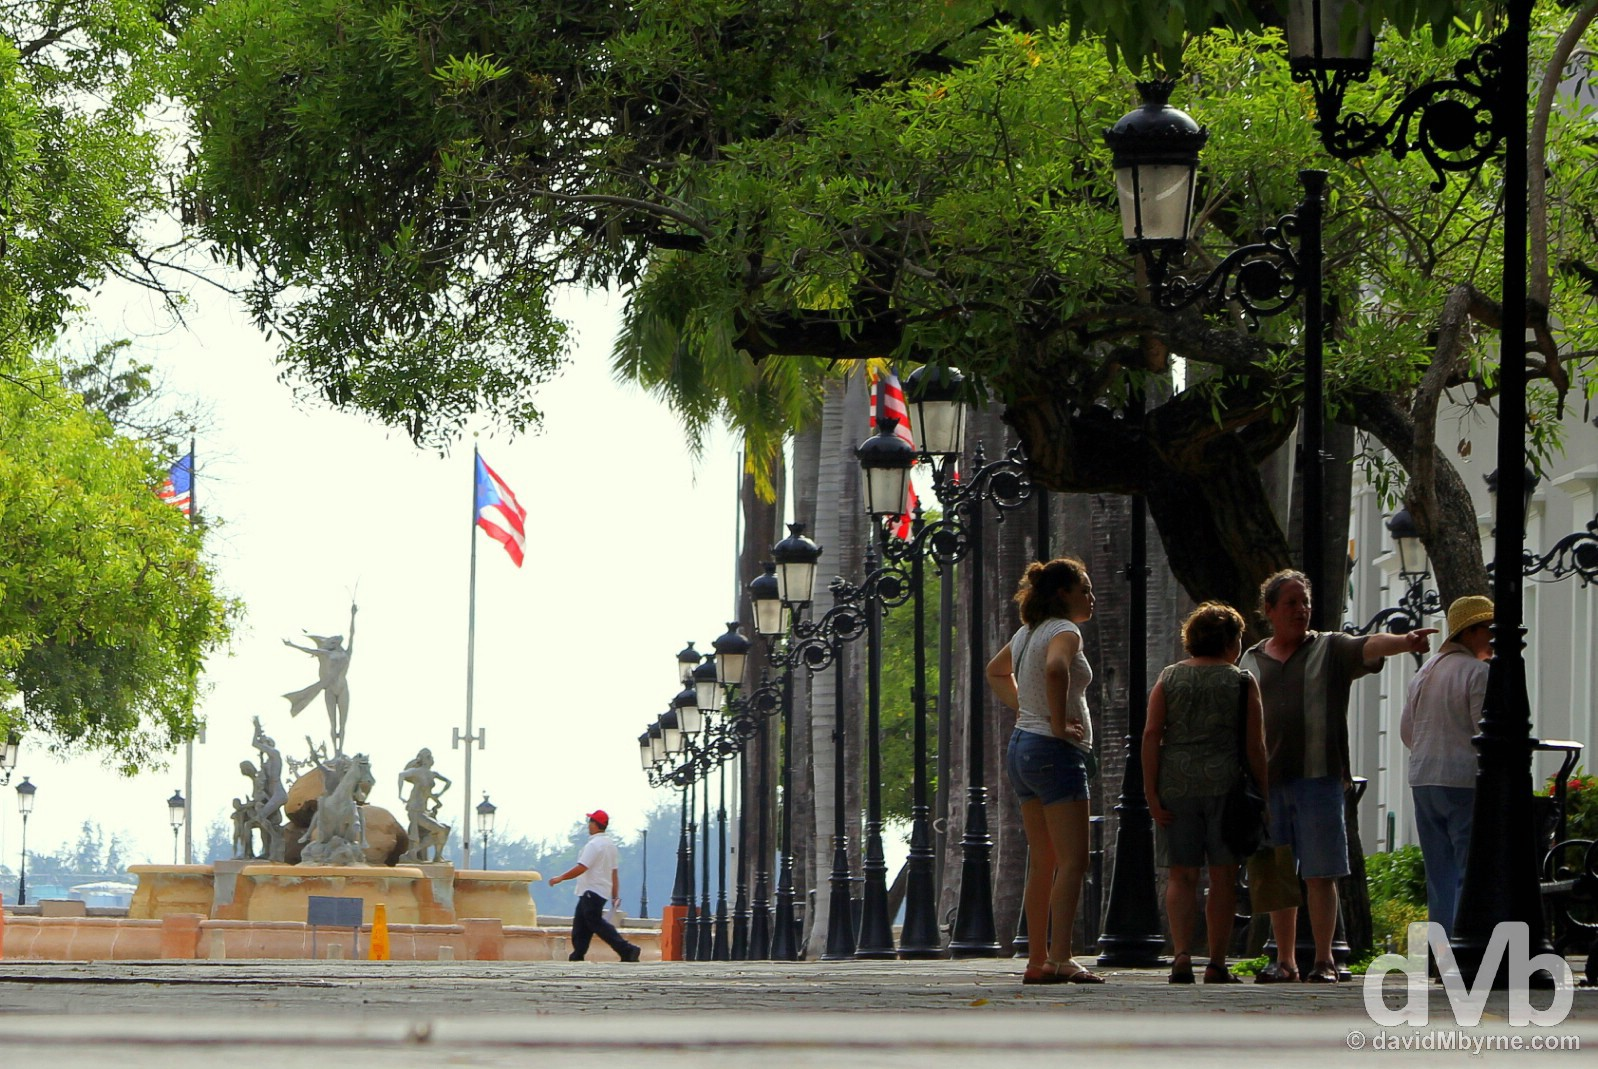 Paseo de la Princesa in Old San Juan, Puerto Rico, Greater Antilles. June 2, 2015.